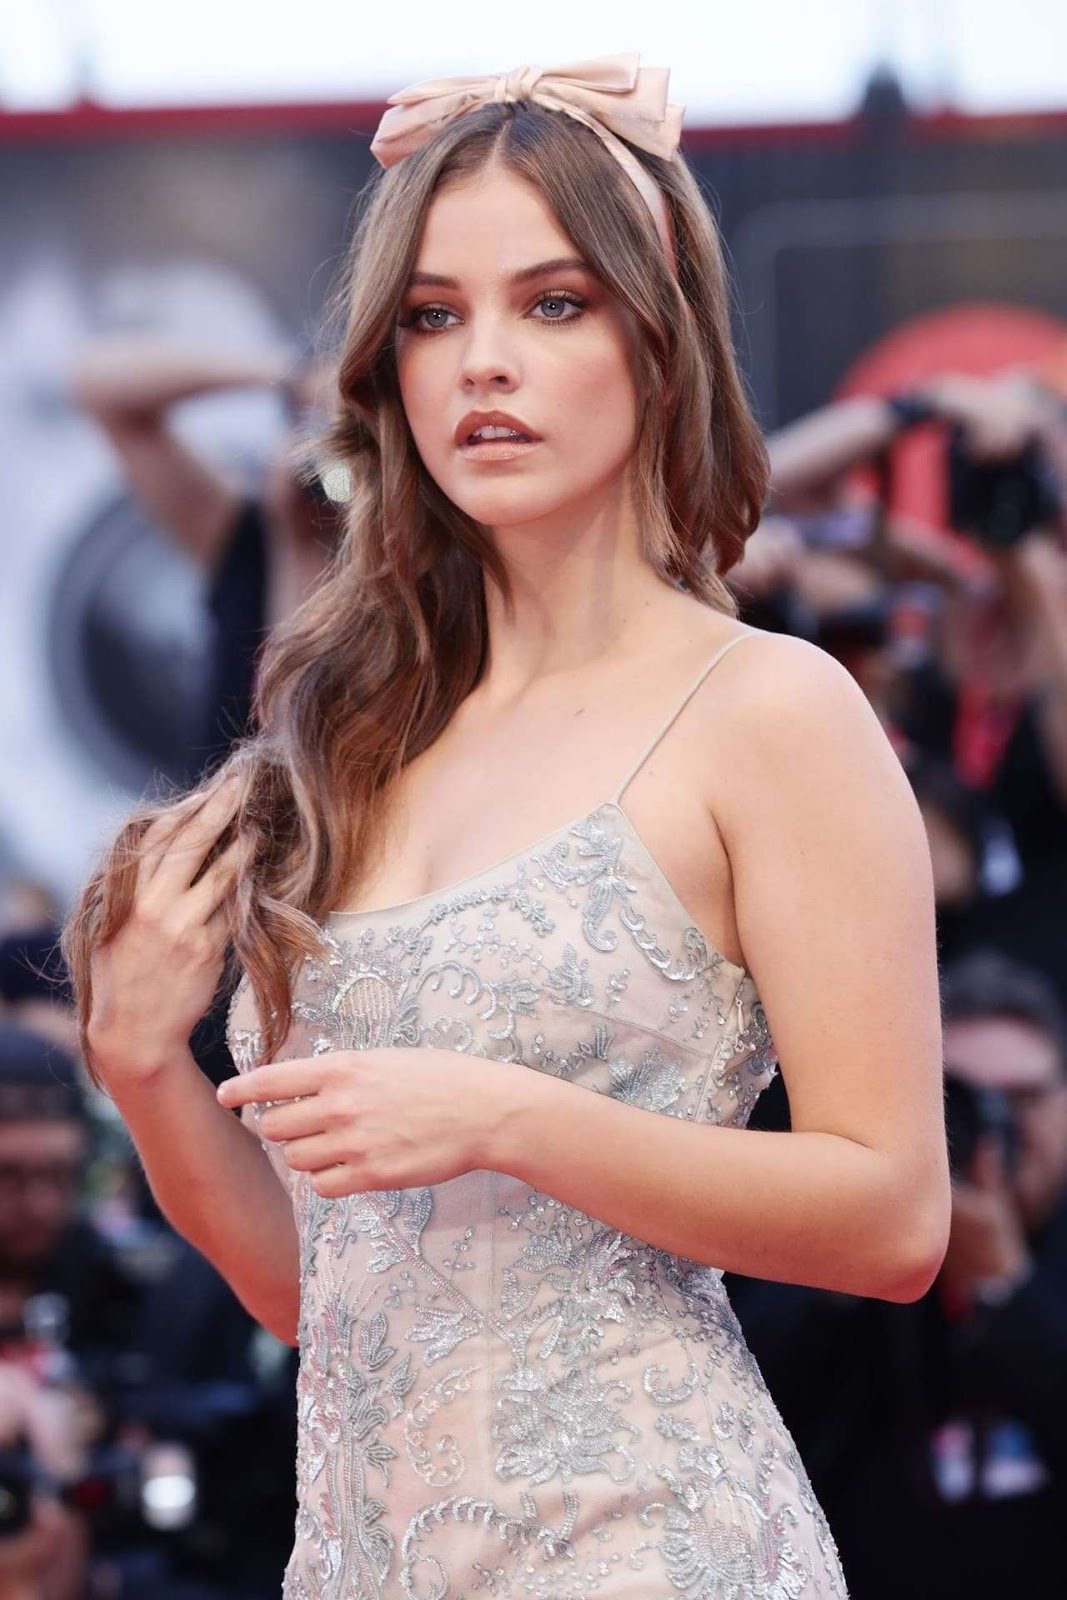 Barbara Palvin at the Screening of 'Joker' at the 76th Venice Film Festival